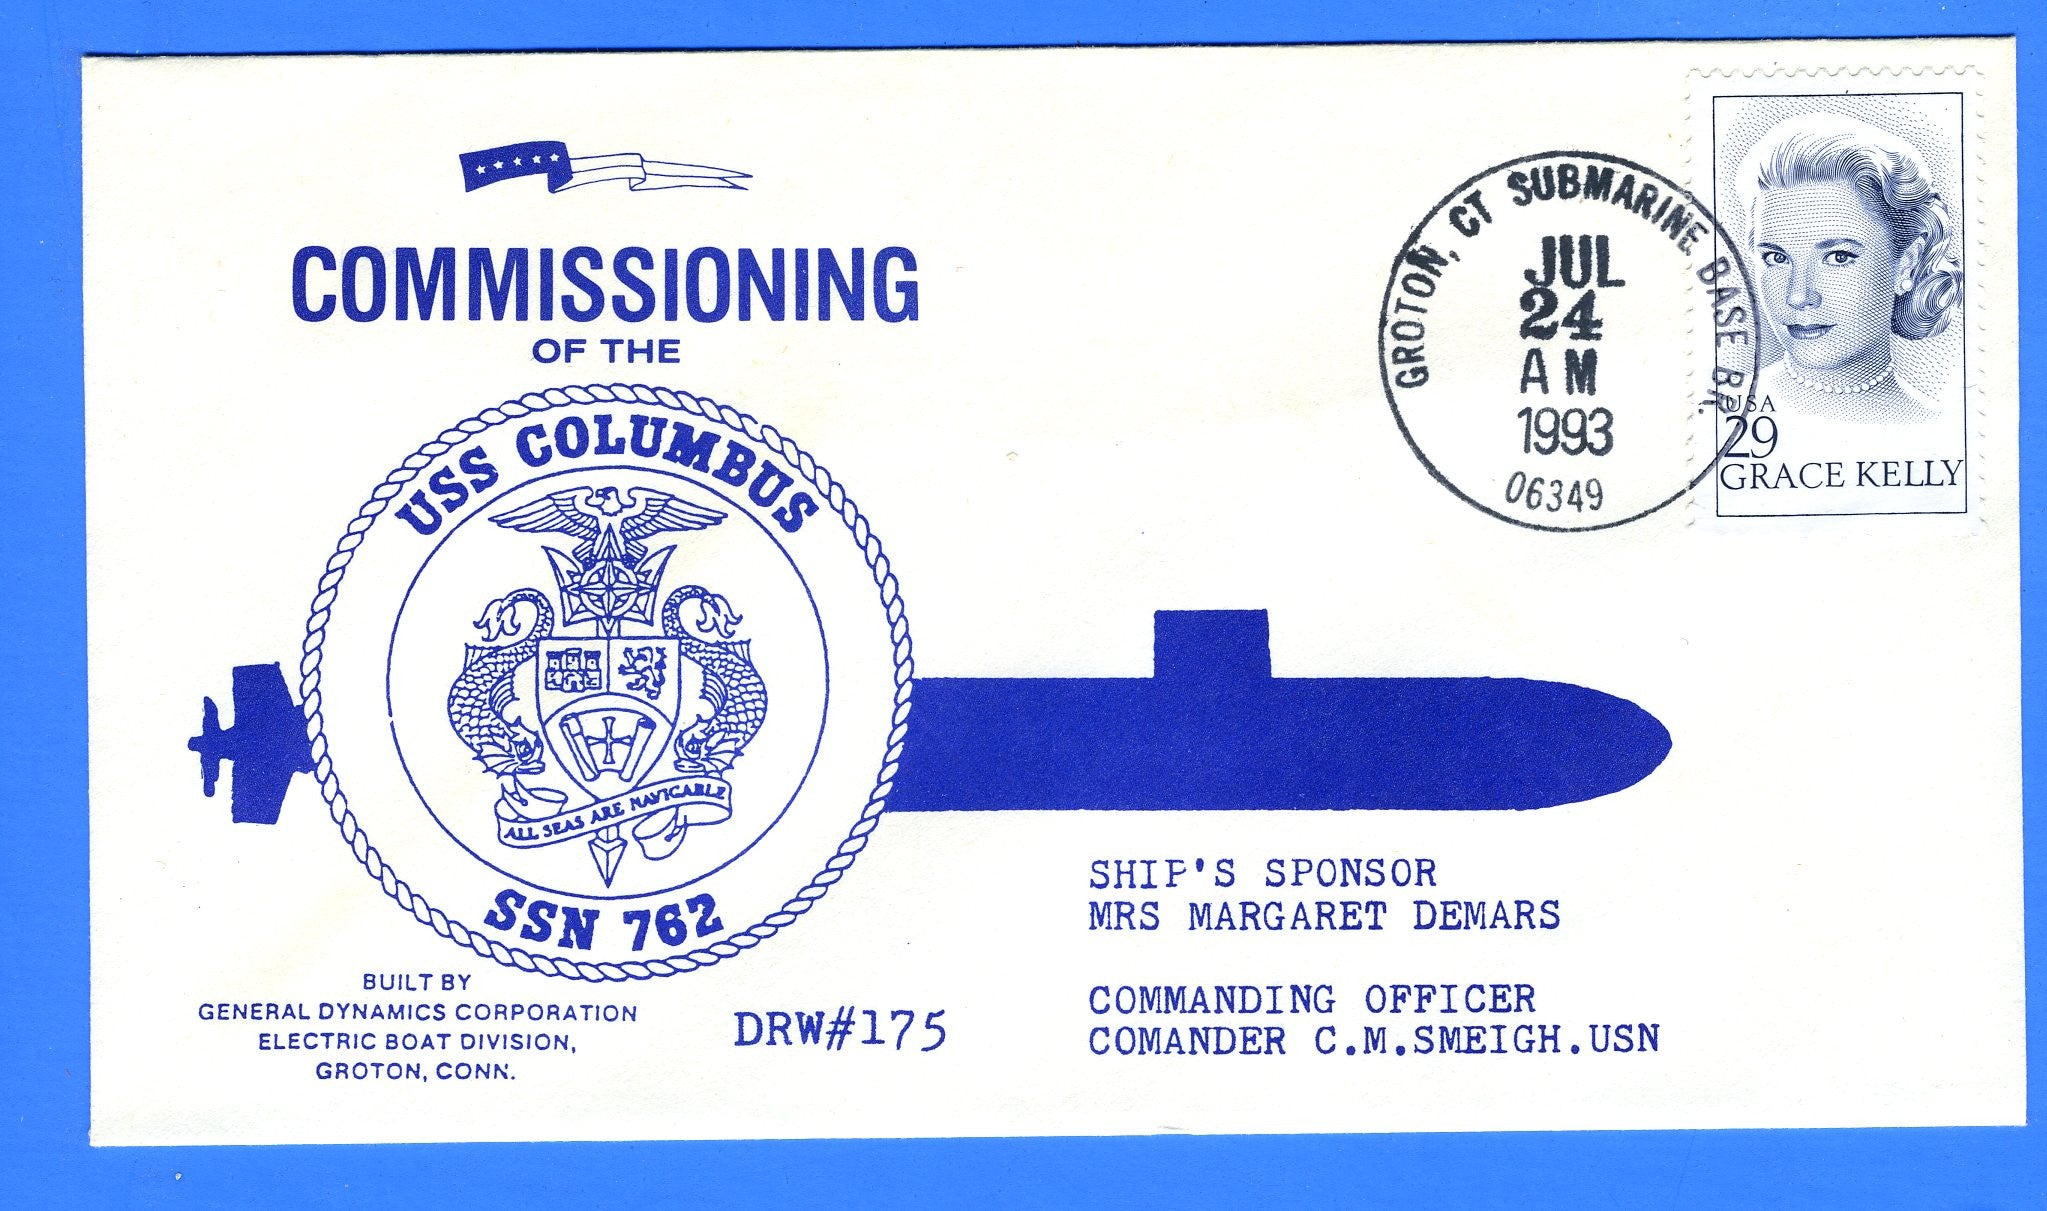 USS Columbus SSN-762 Commissioned July 24, 1993 - Hand Cancel - DRW 175